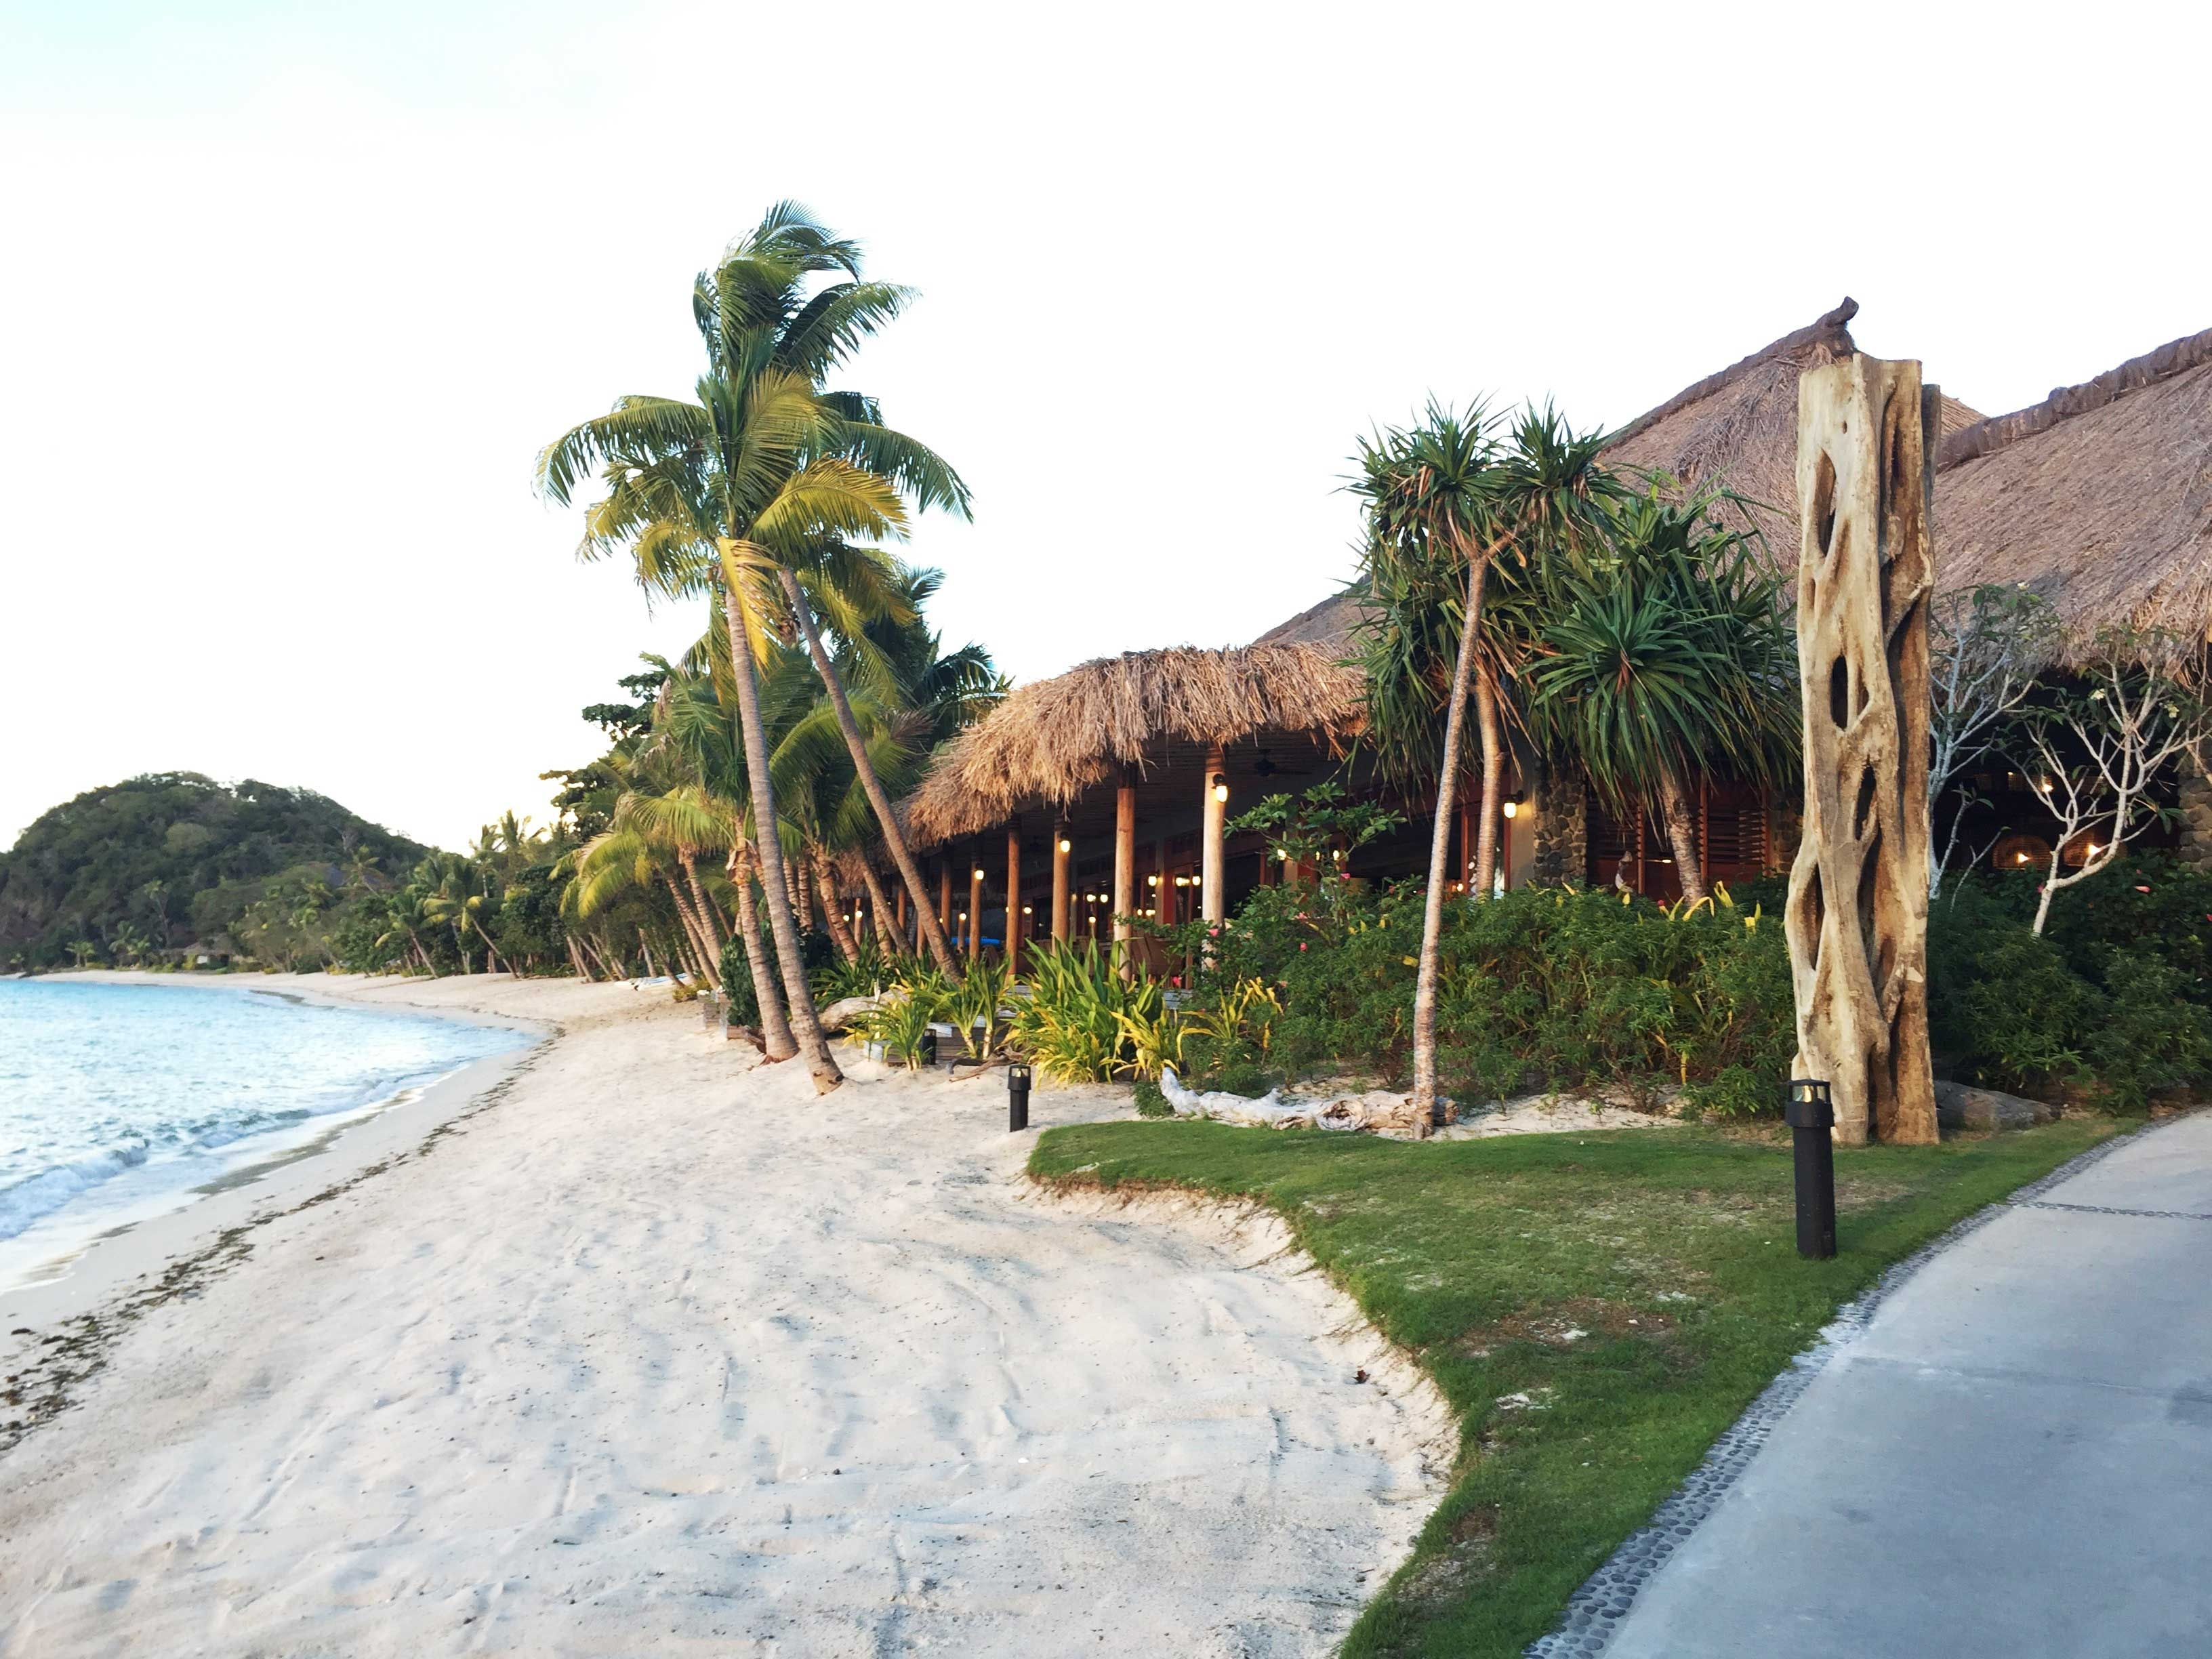 Kokomo Island Resort sits metres from the water's edge, blocked only by a row of tall palm trees